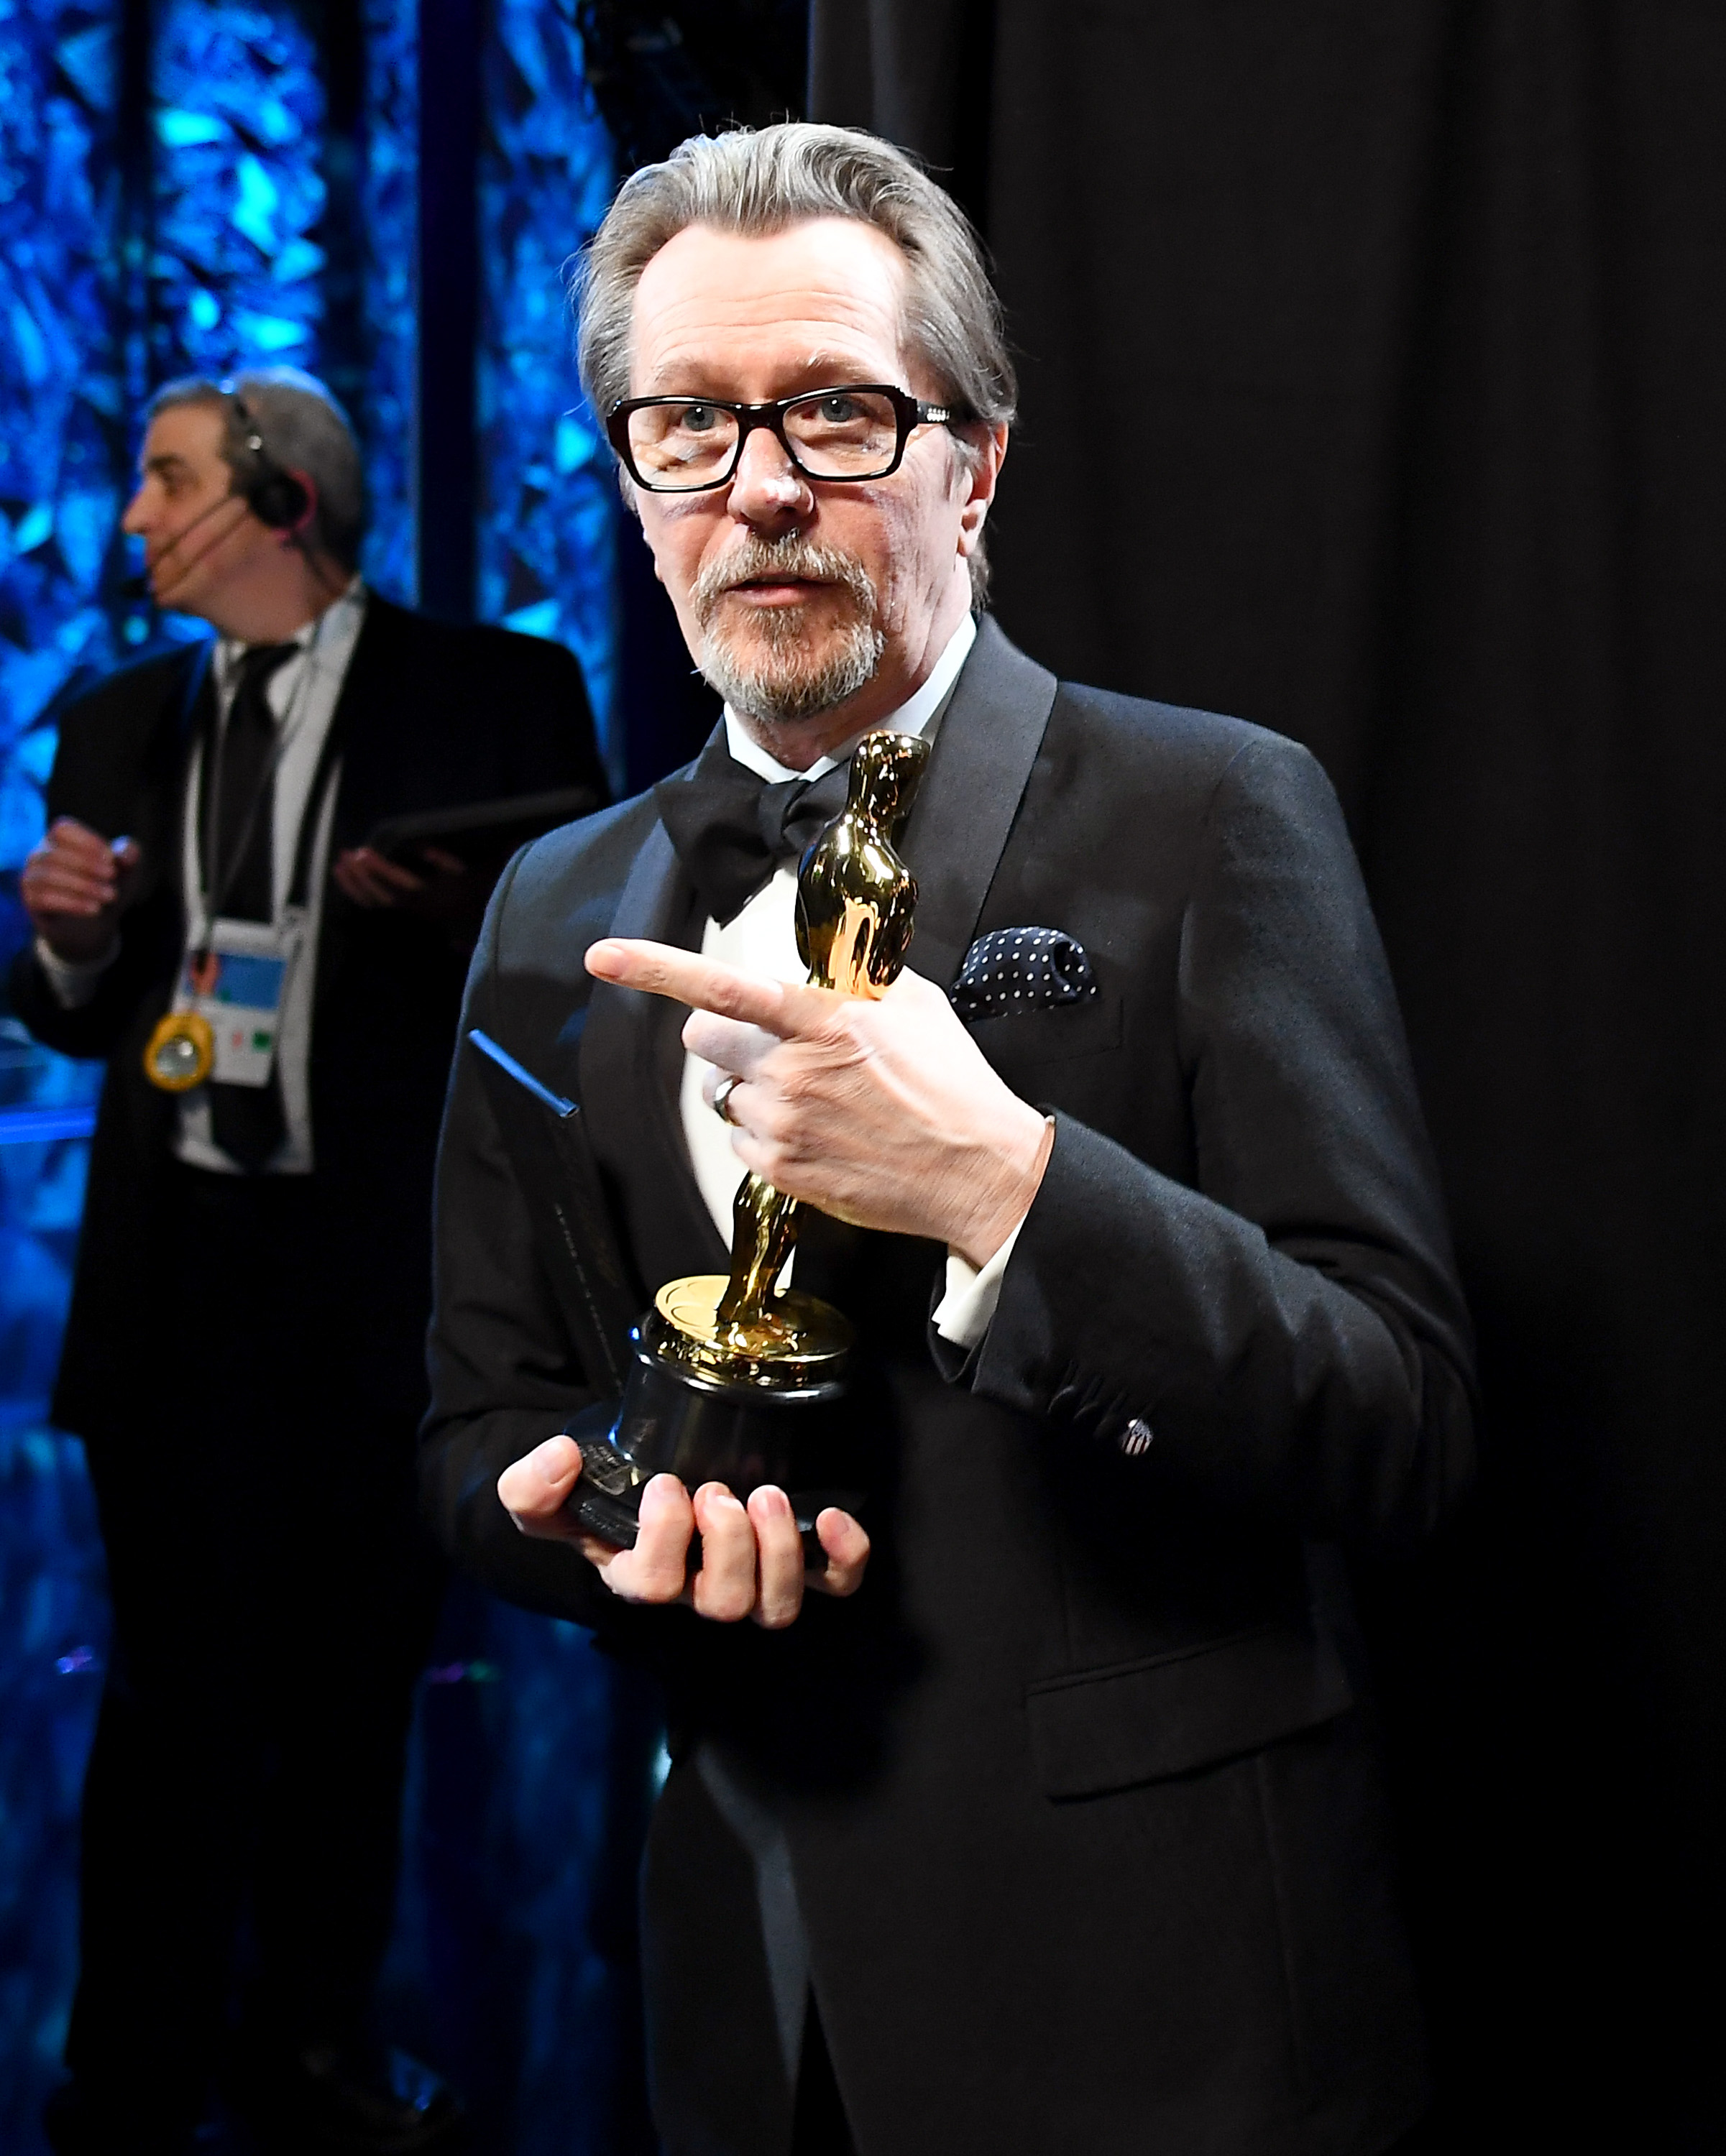 HOLLYWOOD, CA - MARCH 04: In this handout provided by A.M.P.A.S., Gary Oldman attends the 90th Annual Academy Awards at the Dolby Theatre on March 4, 2018 in Hollywood, California. (Photo by Matt Petit/A.M.P.A.S via Getty Images)